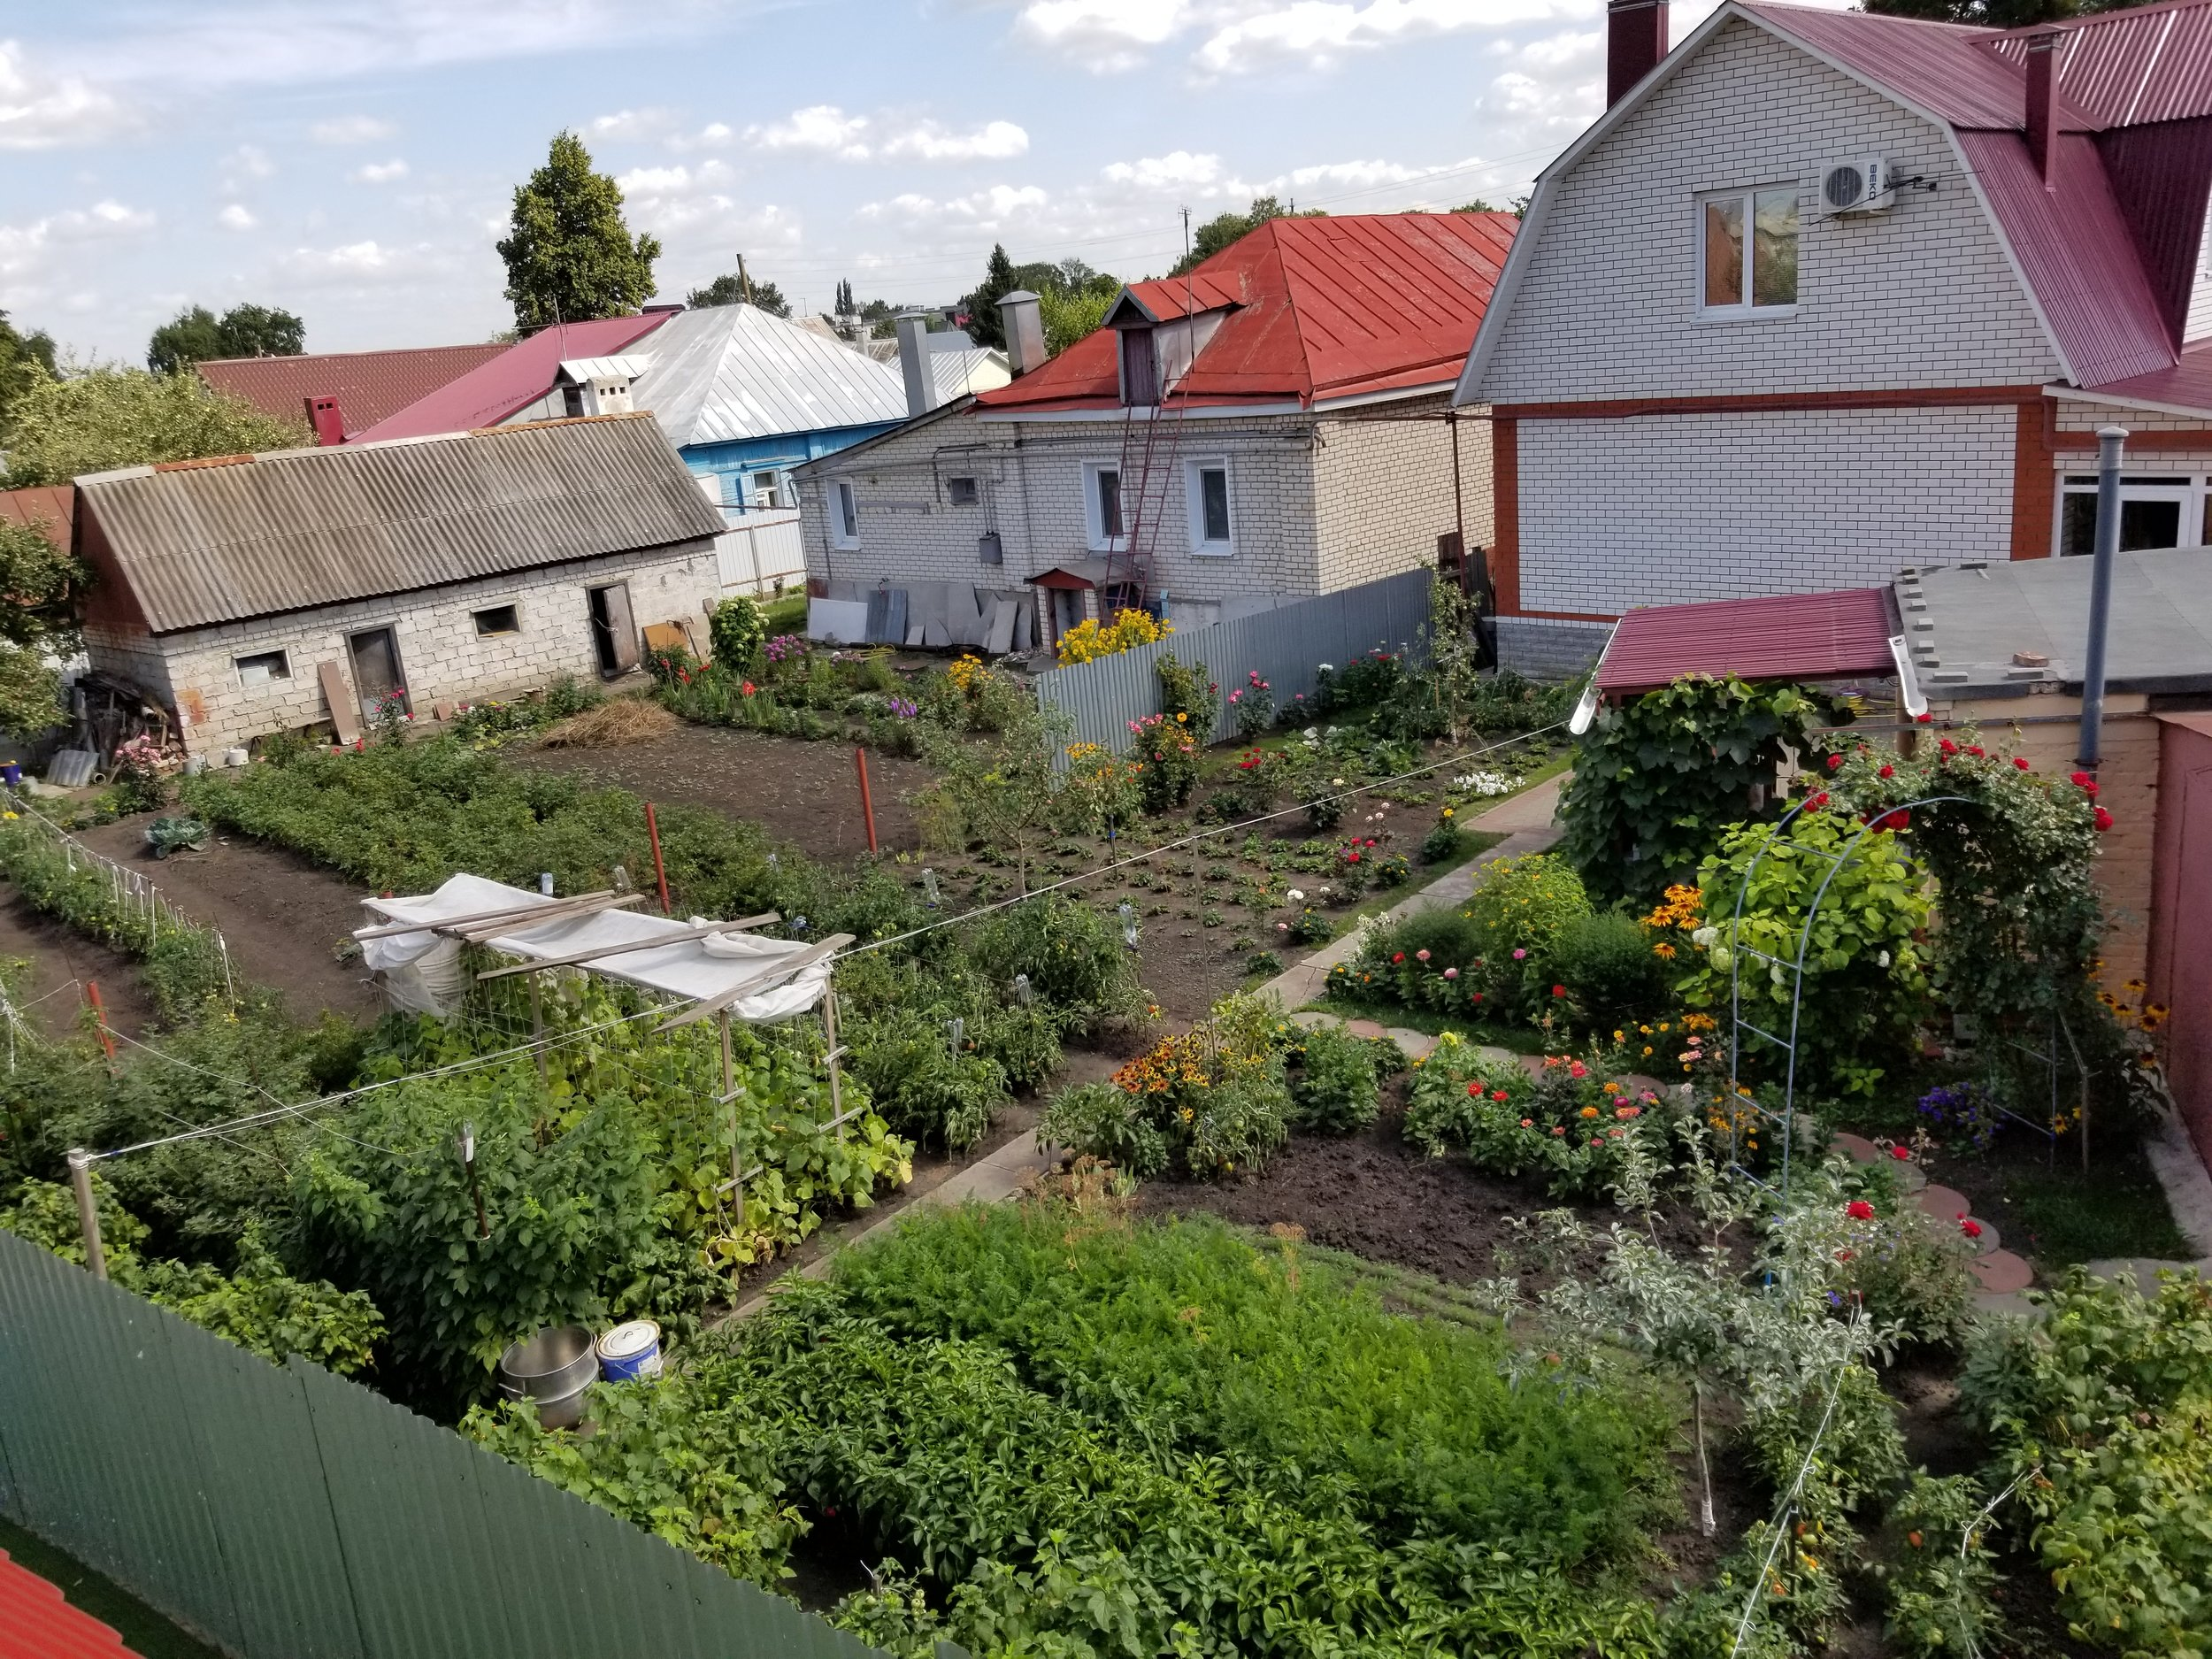 The incredible gardens around the church where the neighbors grow fruits, vegetables and flowers.